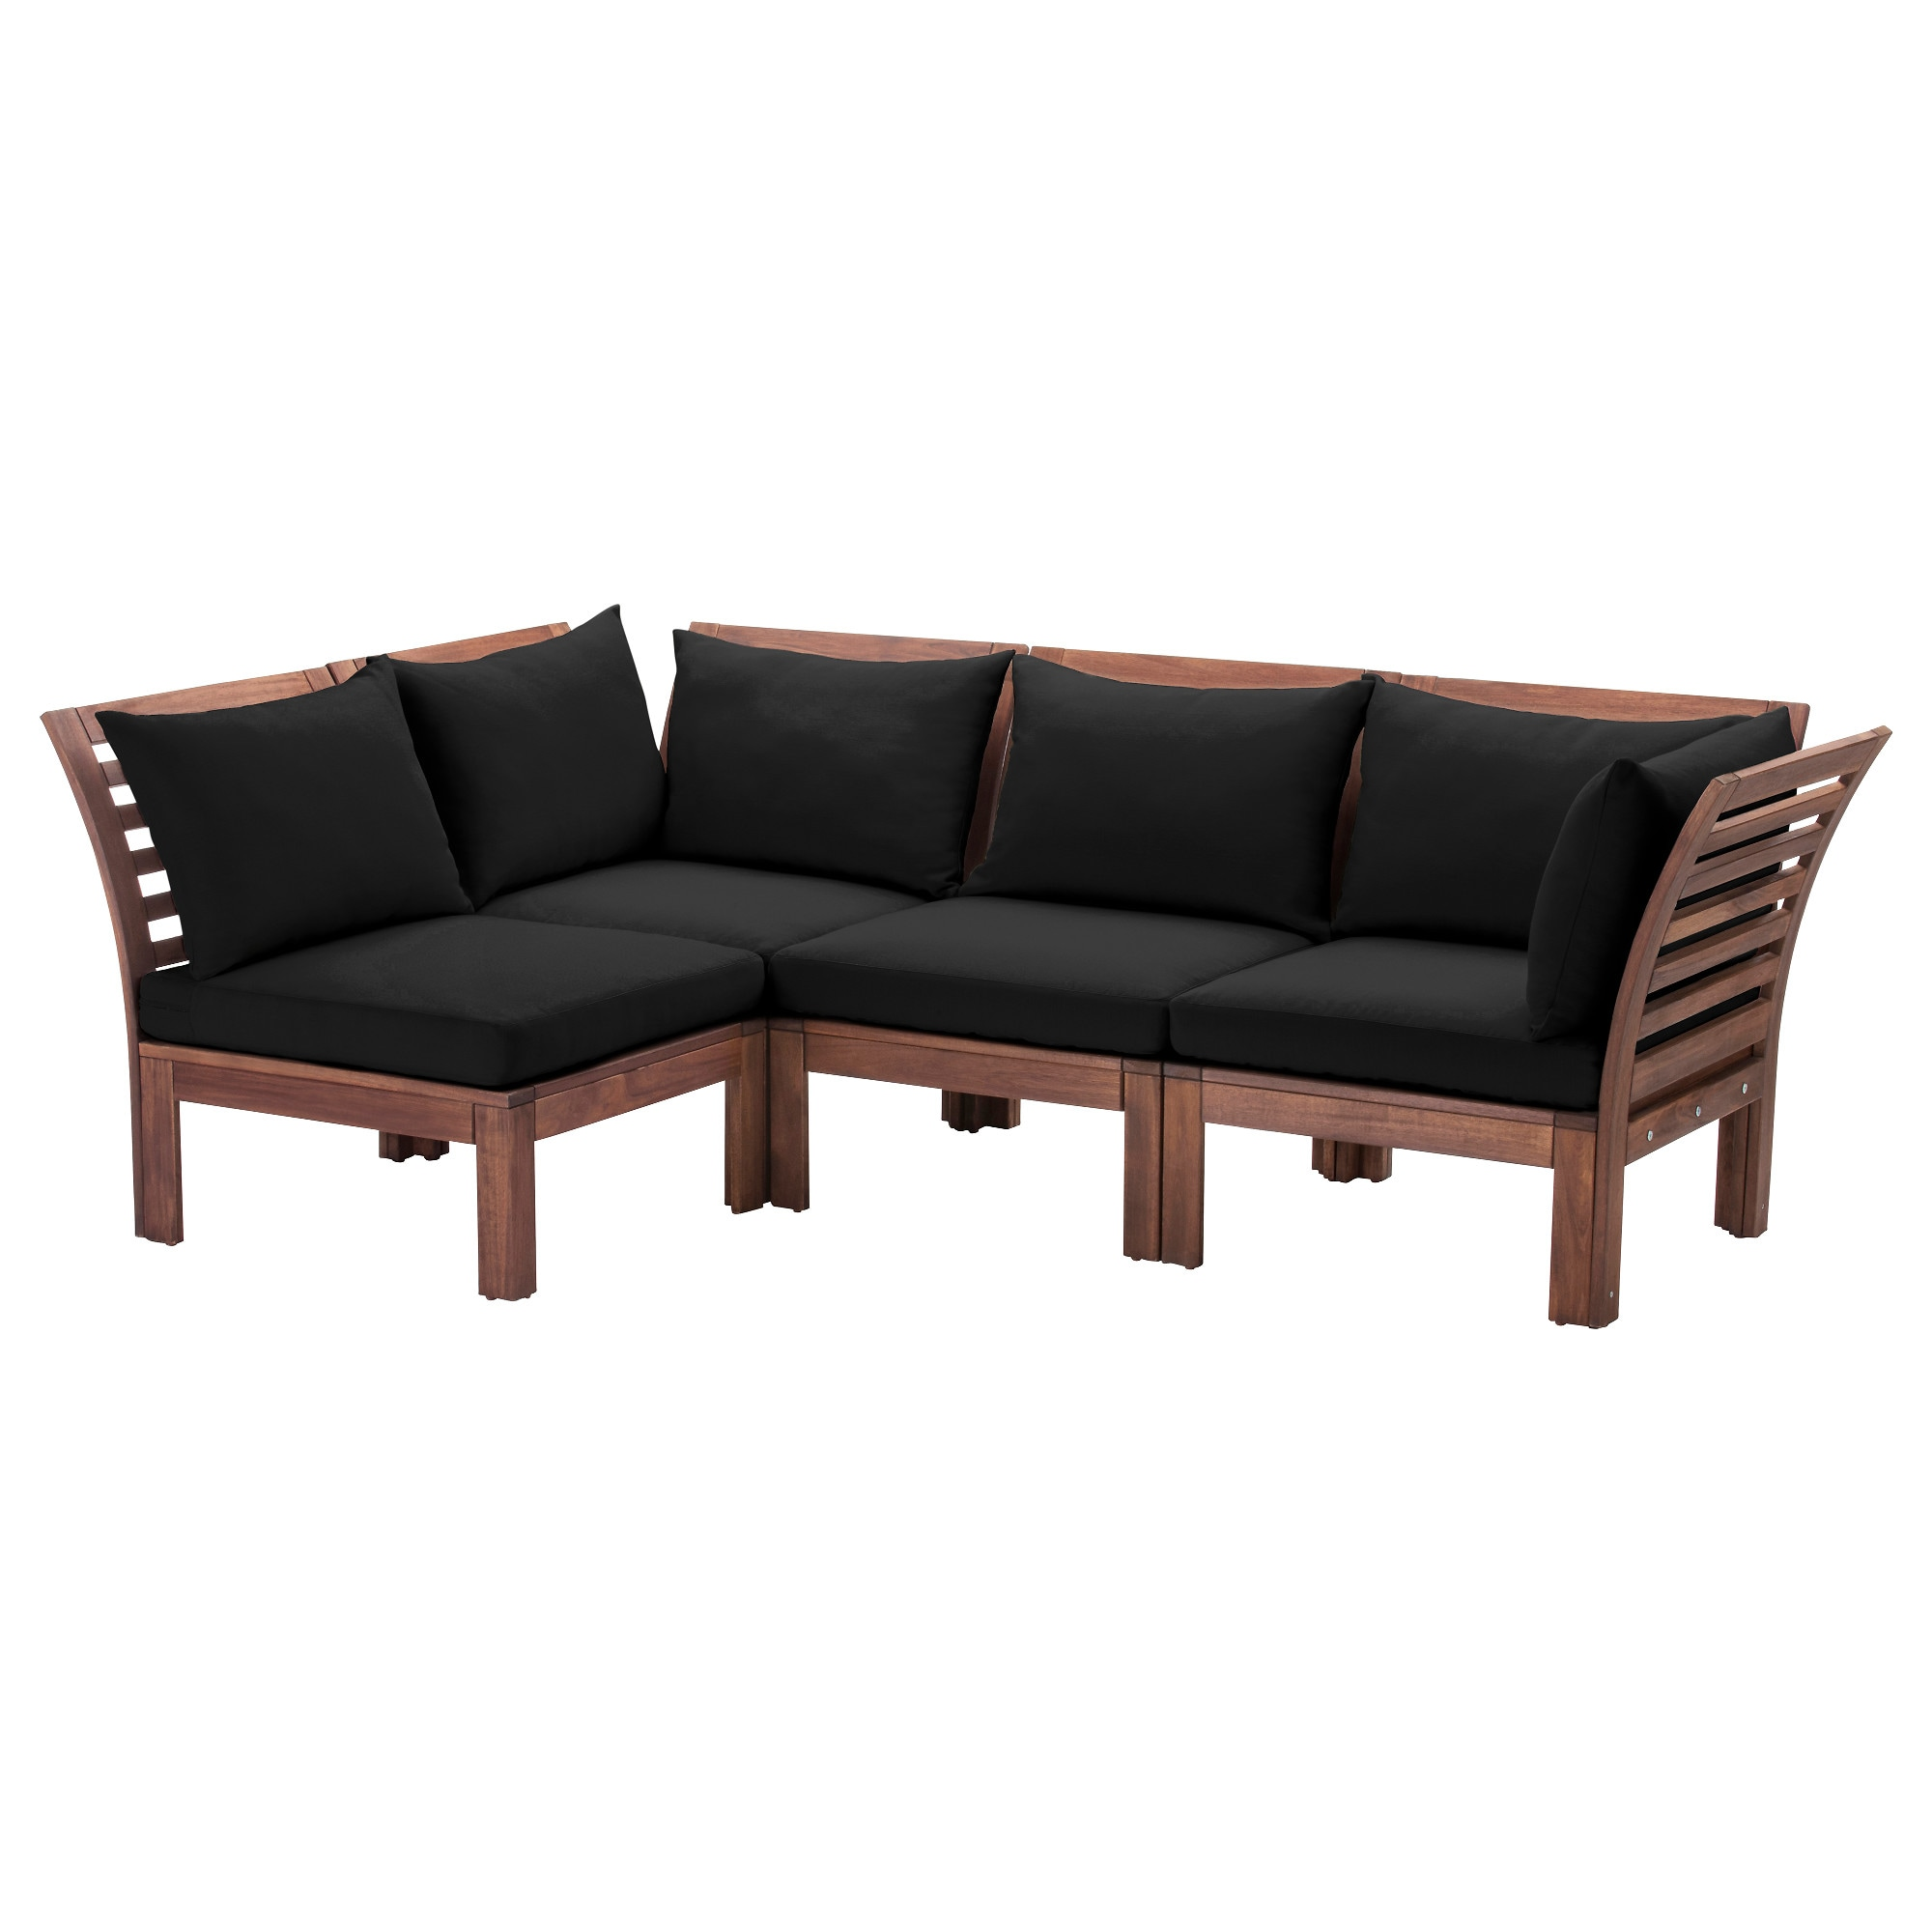 """PPLAR– 4 seat sectional outdoor brown stained black IKEA"